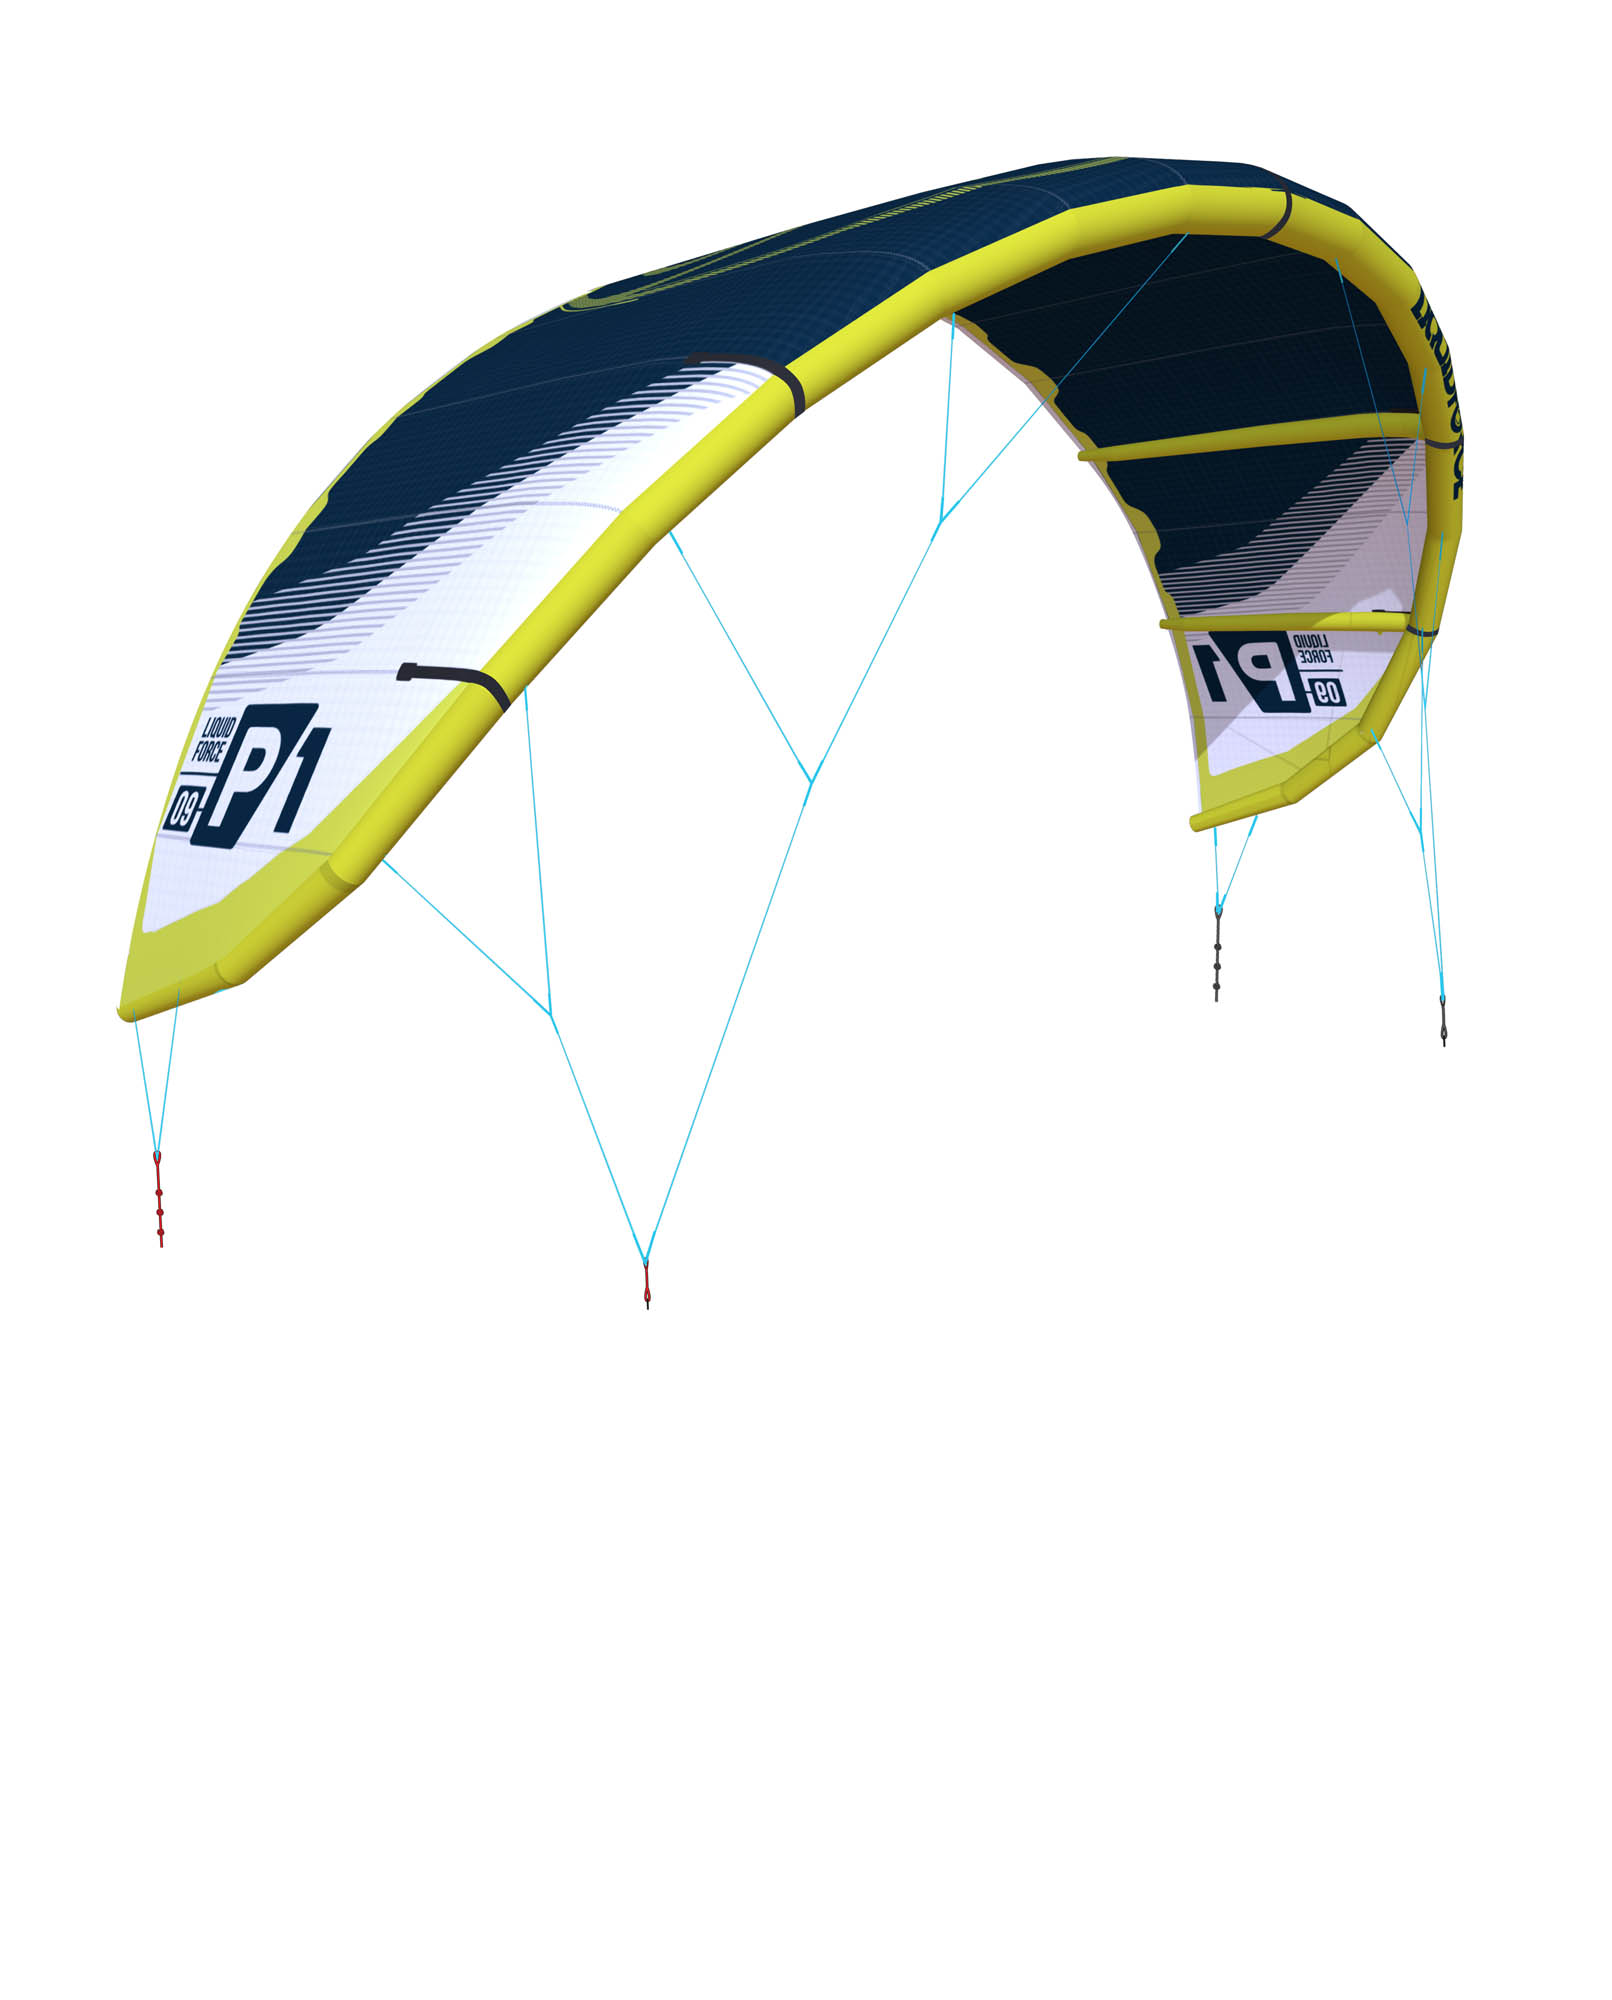 Kites LIQUID FORCE P1 (4až16m) (2018/2019) freeride/freestyle/foil/BigAir